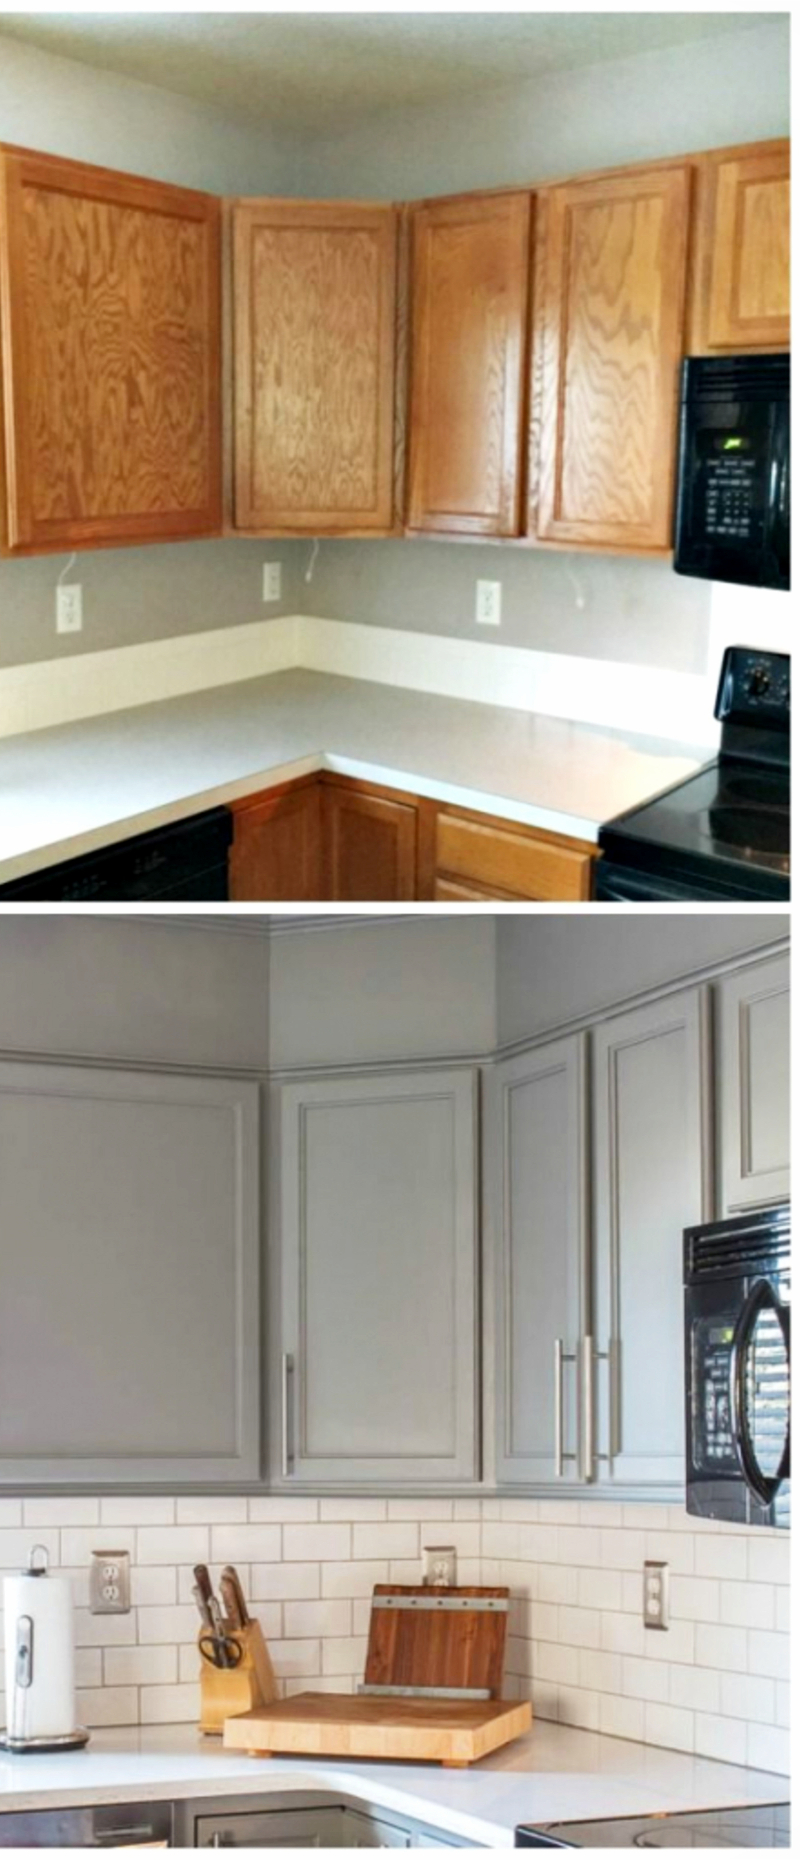 Small kitchen makeovers before and after - small kitchens remodel ideas and pictures #kitchenideas #farmhousedecor #kitchendecor #kitchenremodel #diyhomedecor #homedecorideas #farmhousekitchen